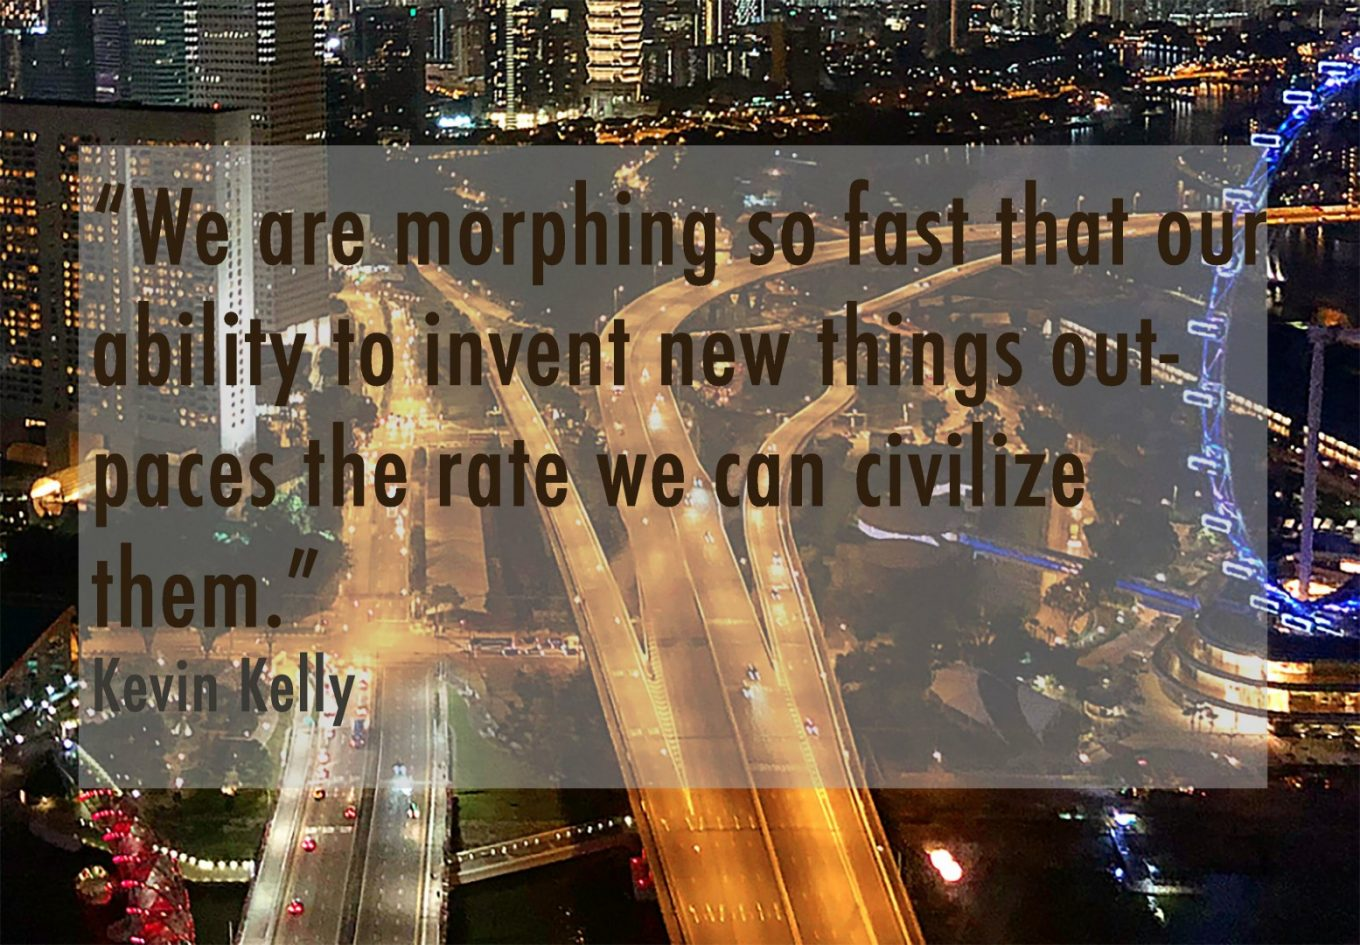 quote by Kevin Kelly